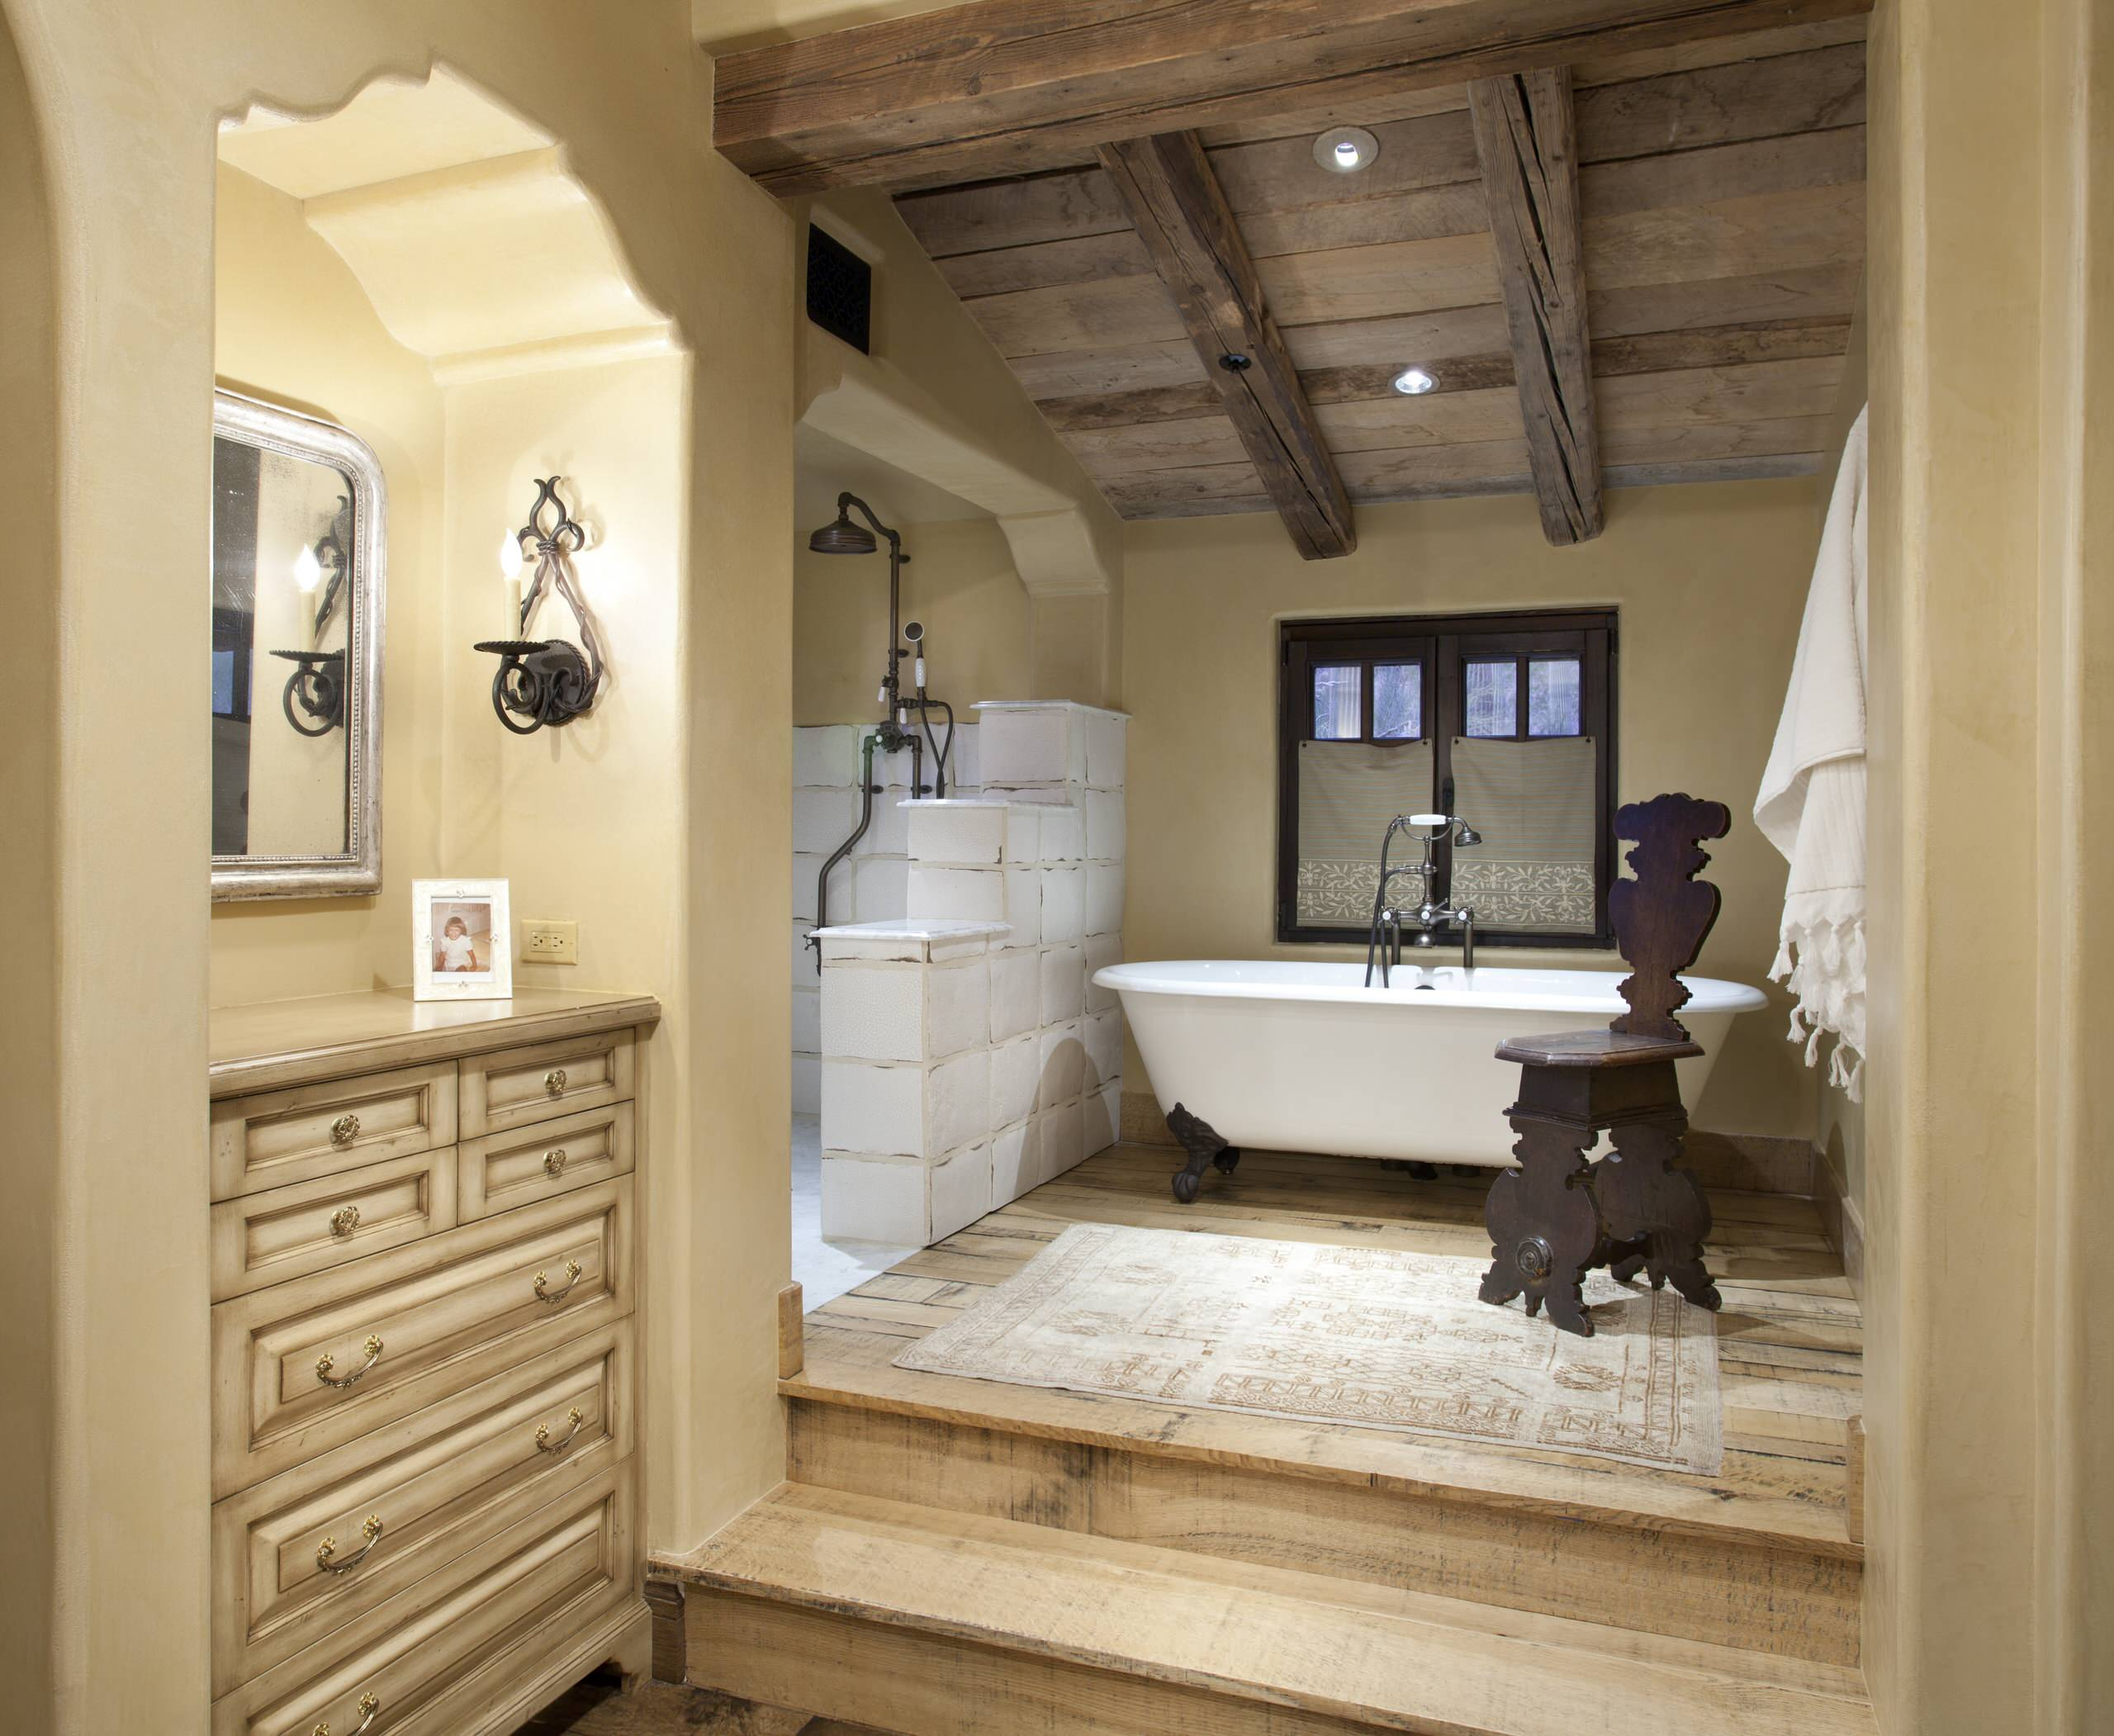 modern bathroom with clawfoot tub. Cool Bathroom Design With Dresser And Wall Mirror Also Sconce  Wood Flooring Modern Decoration Features Classic Clawfoot Tub